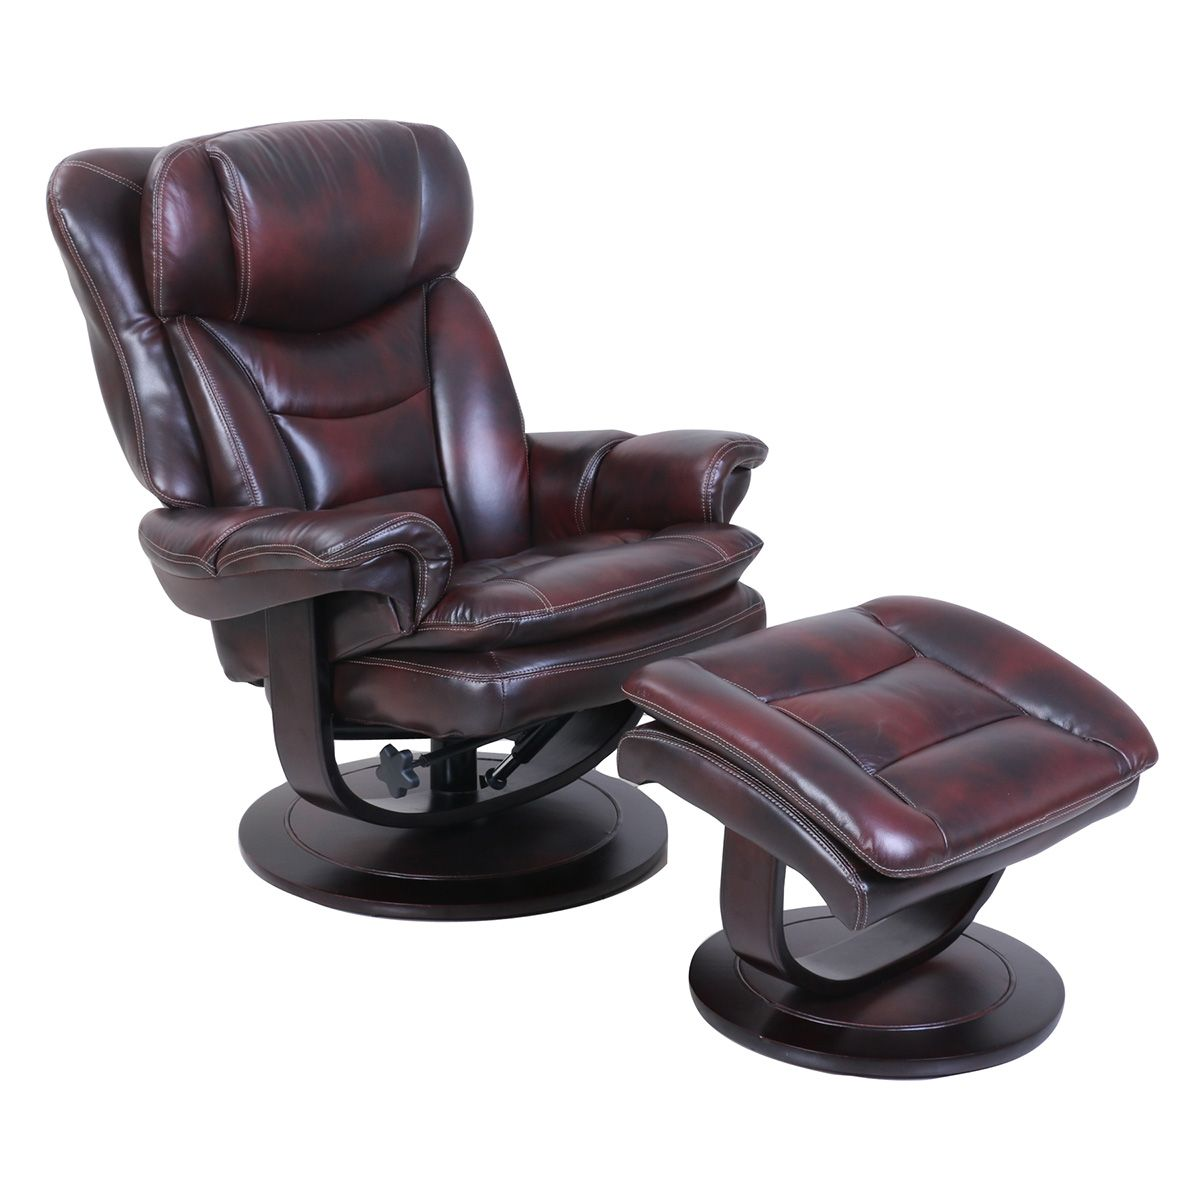 Sensational Barcalounger Roscoe Pedestal Recliner Plymouth Mahogany Andrewgaddart Wooden Chair Designs For Living Room Andrewgaddartcom